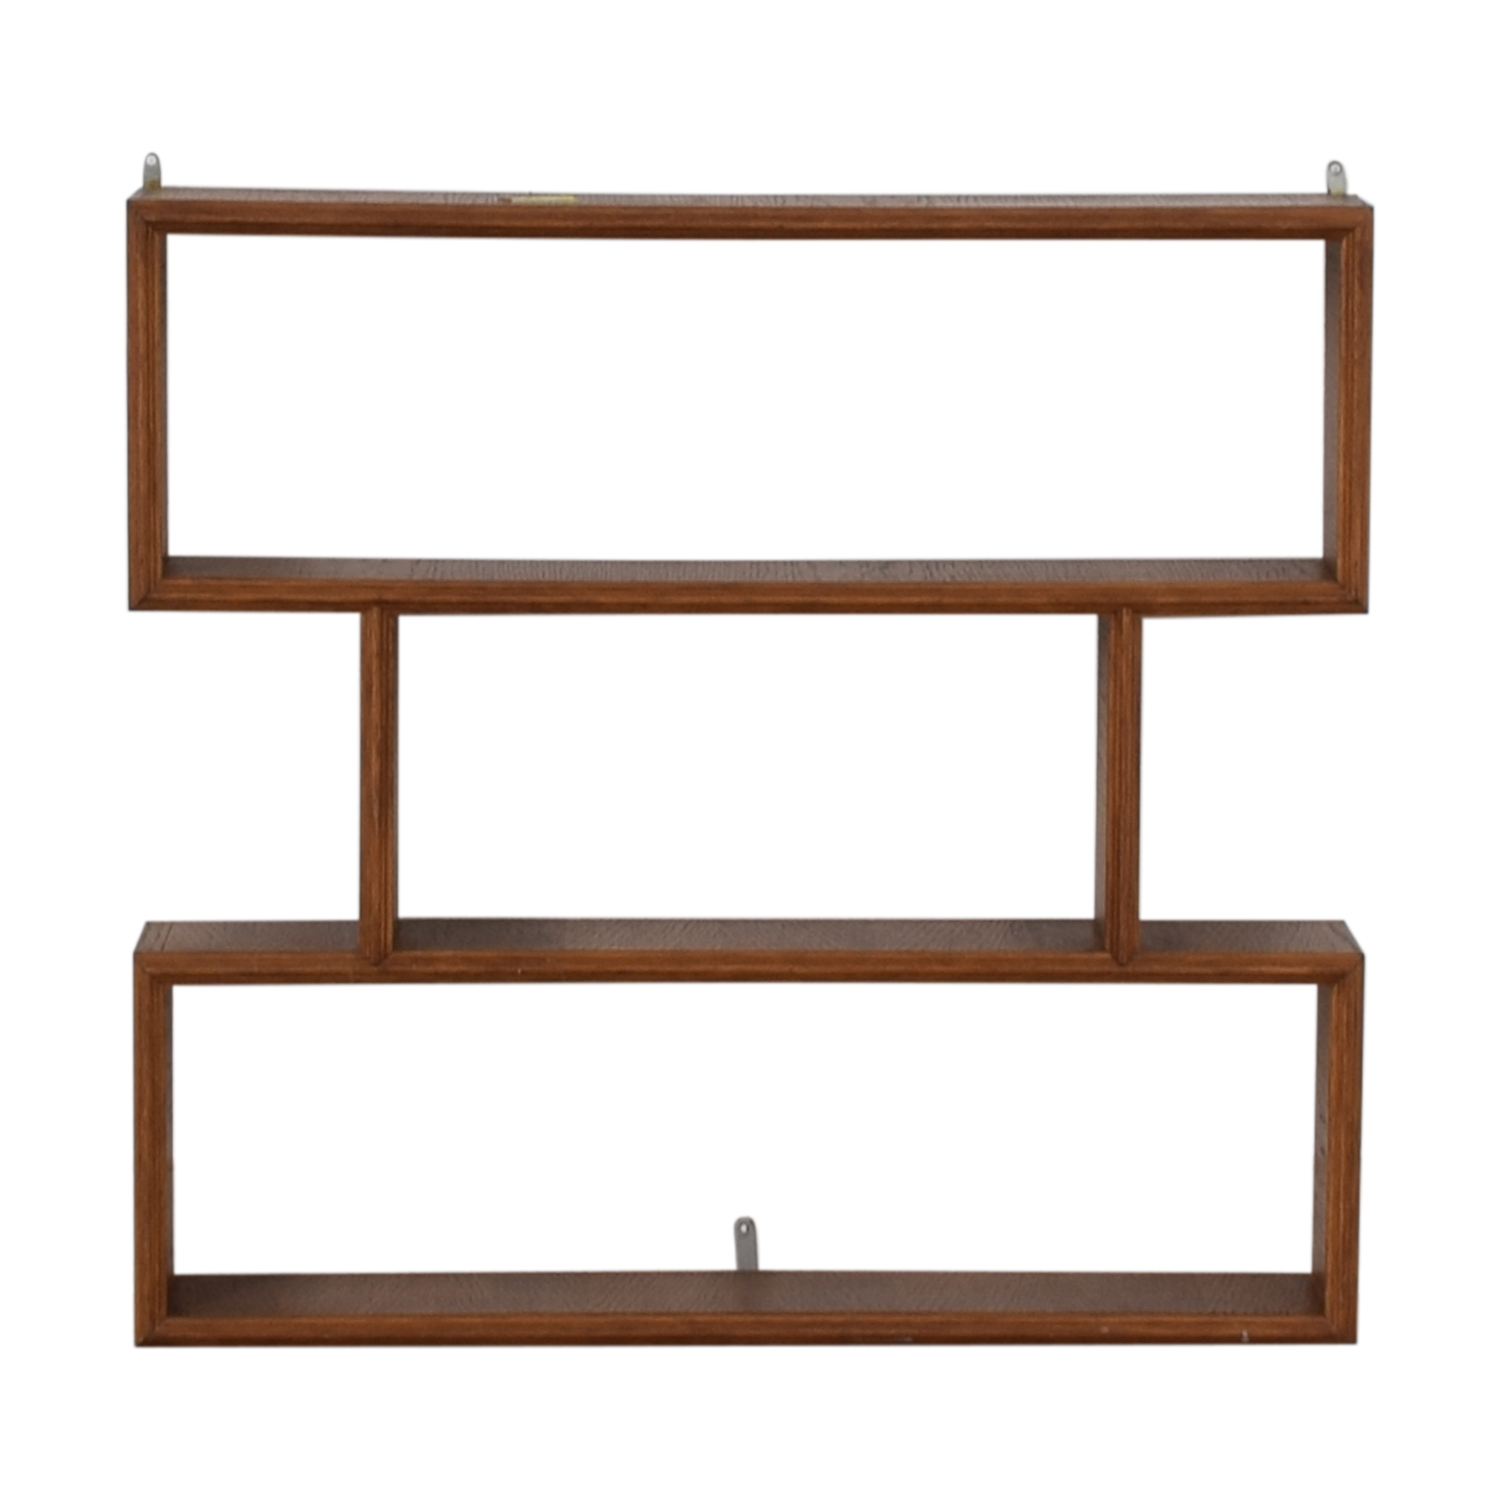 Custom Made French Made Mid Century Wall Shelf dimensions